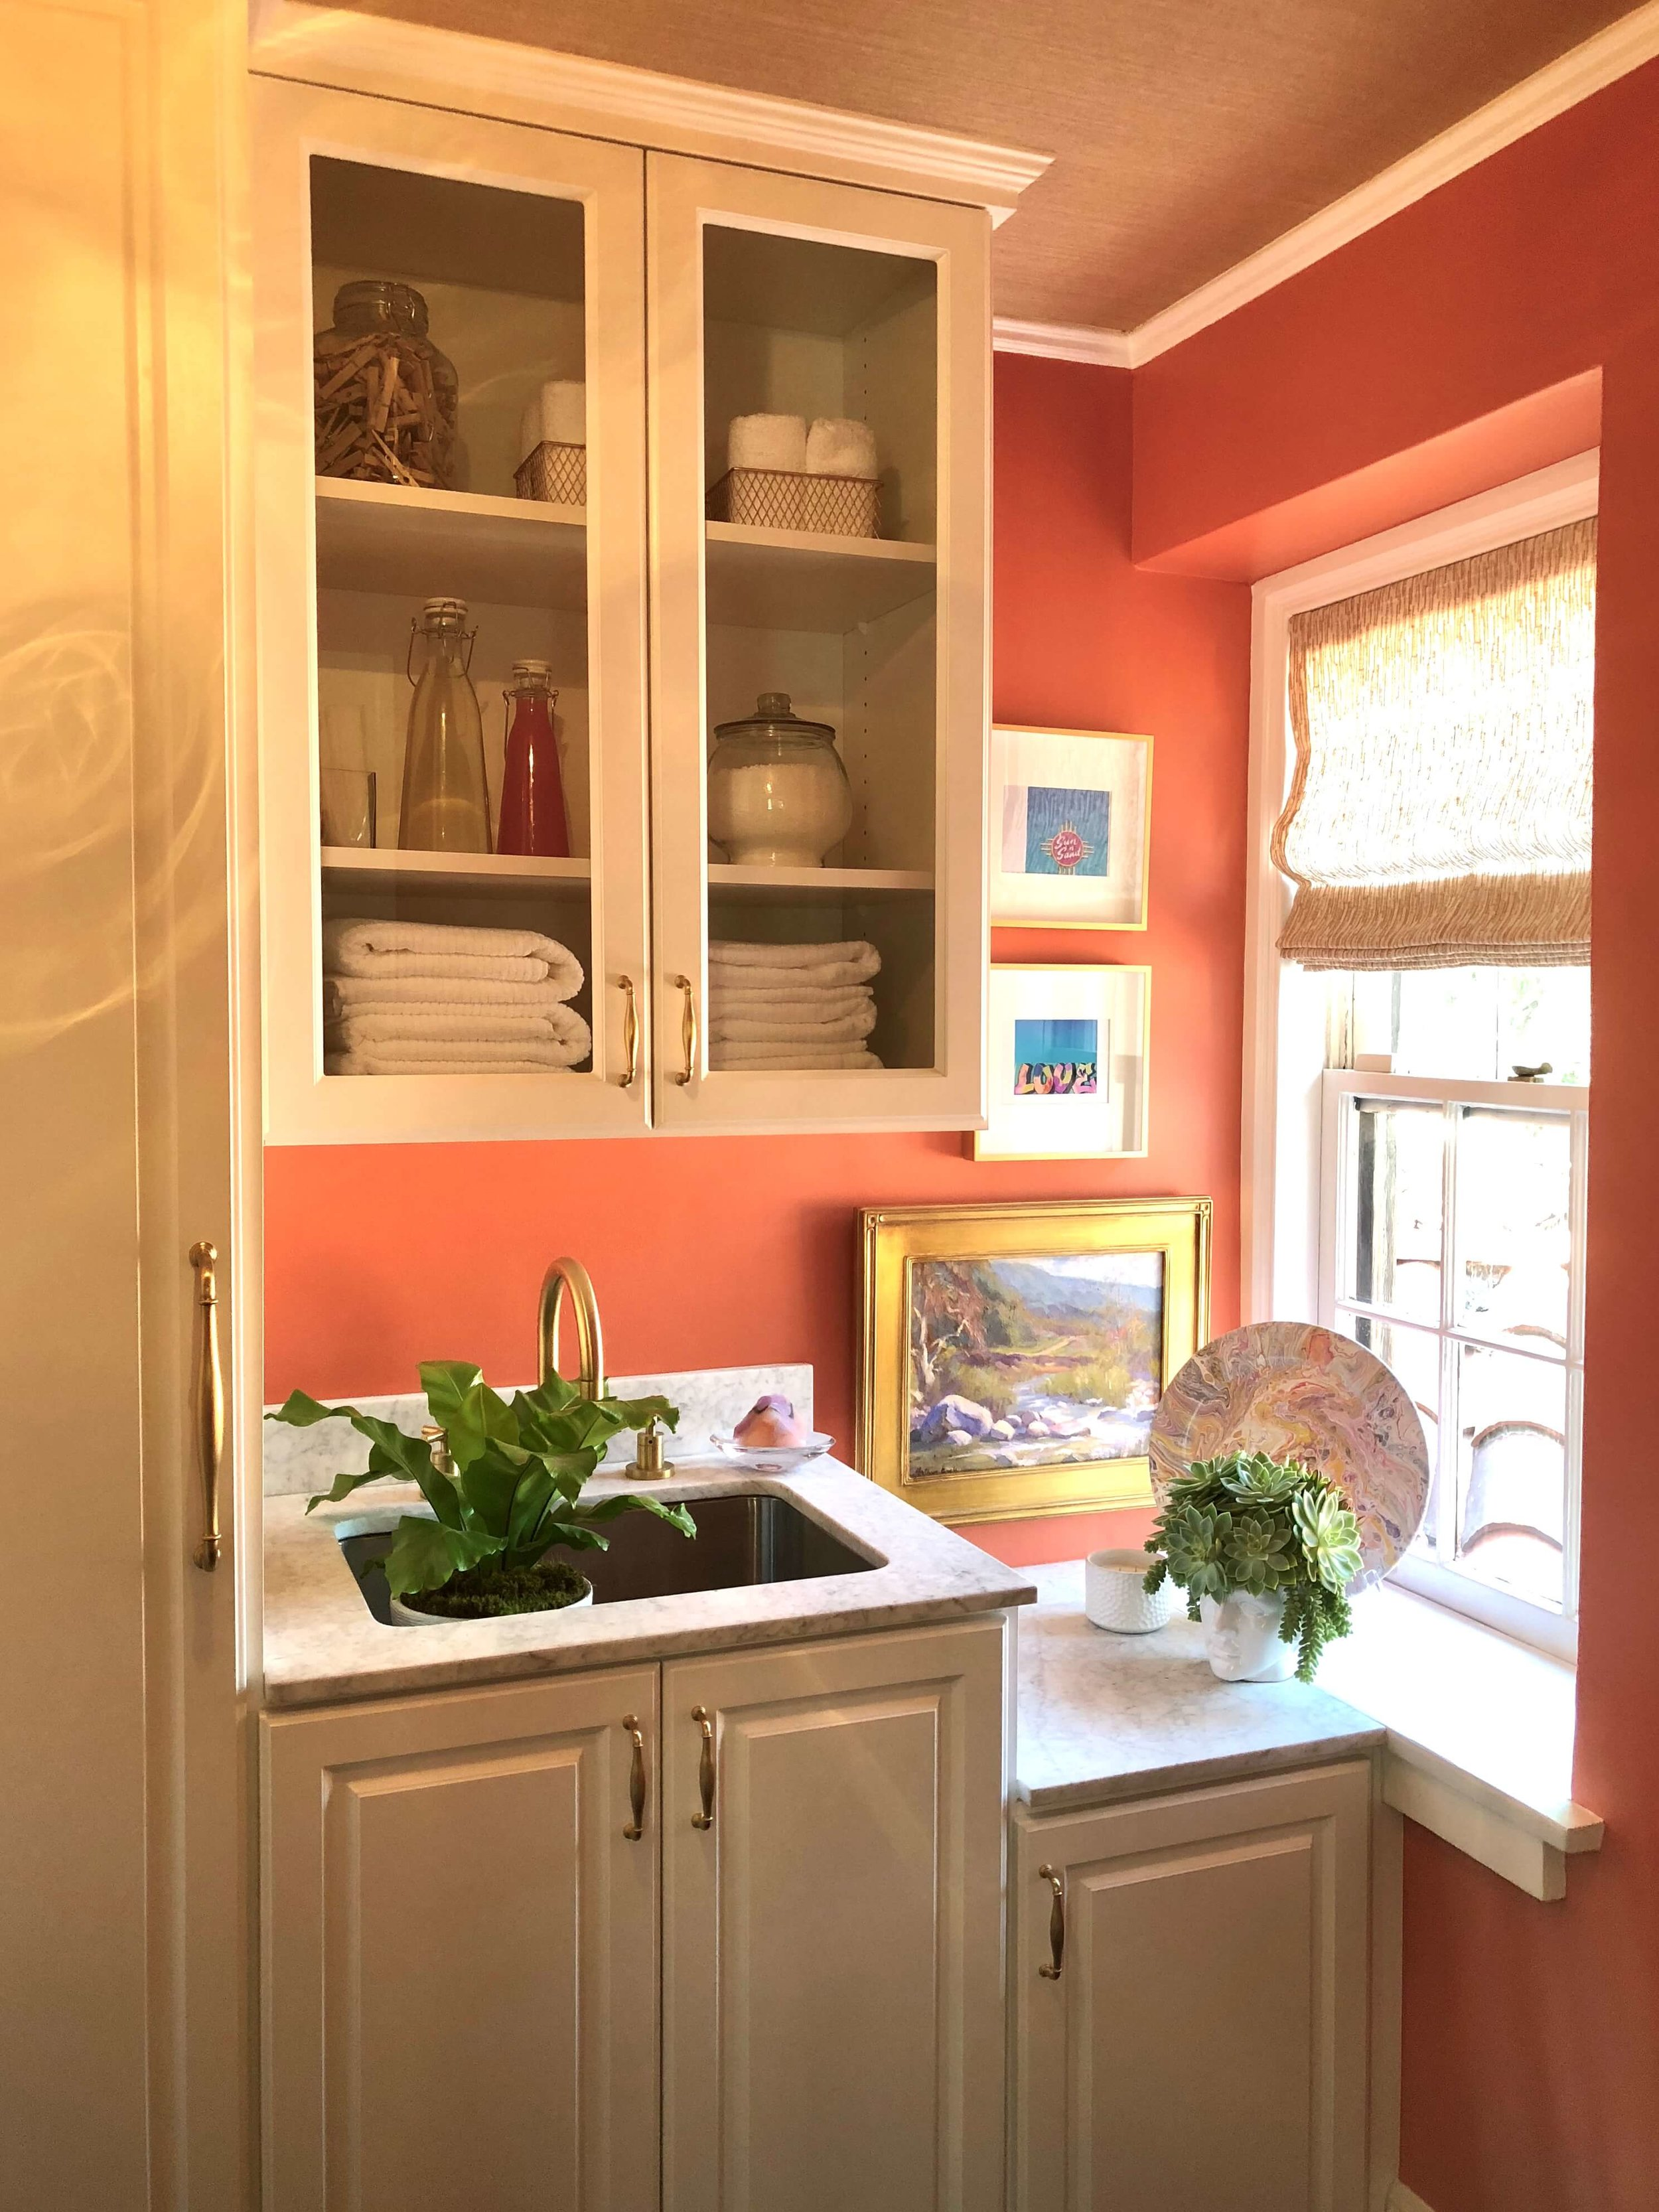 Upstairs laundry room with coral walls and white marble countertops, Designer: Kirsten Acevedo #laundryroom #coral